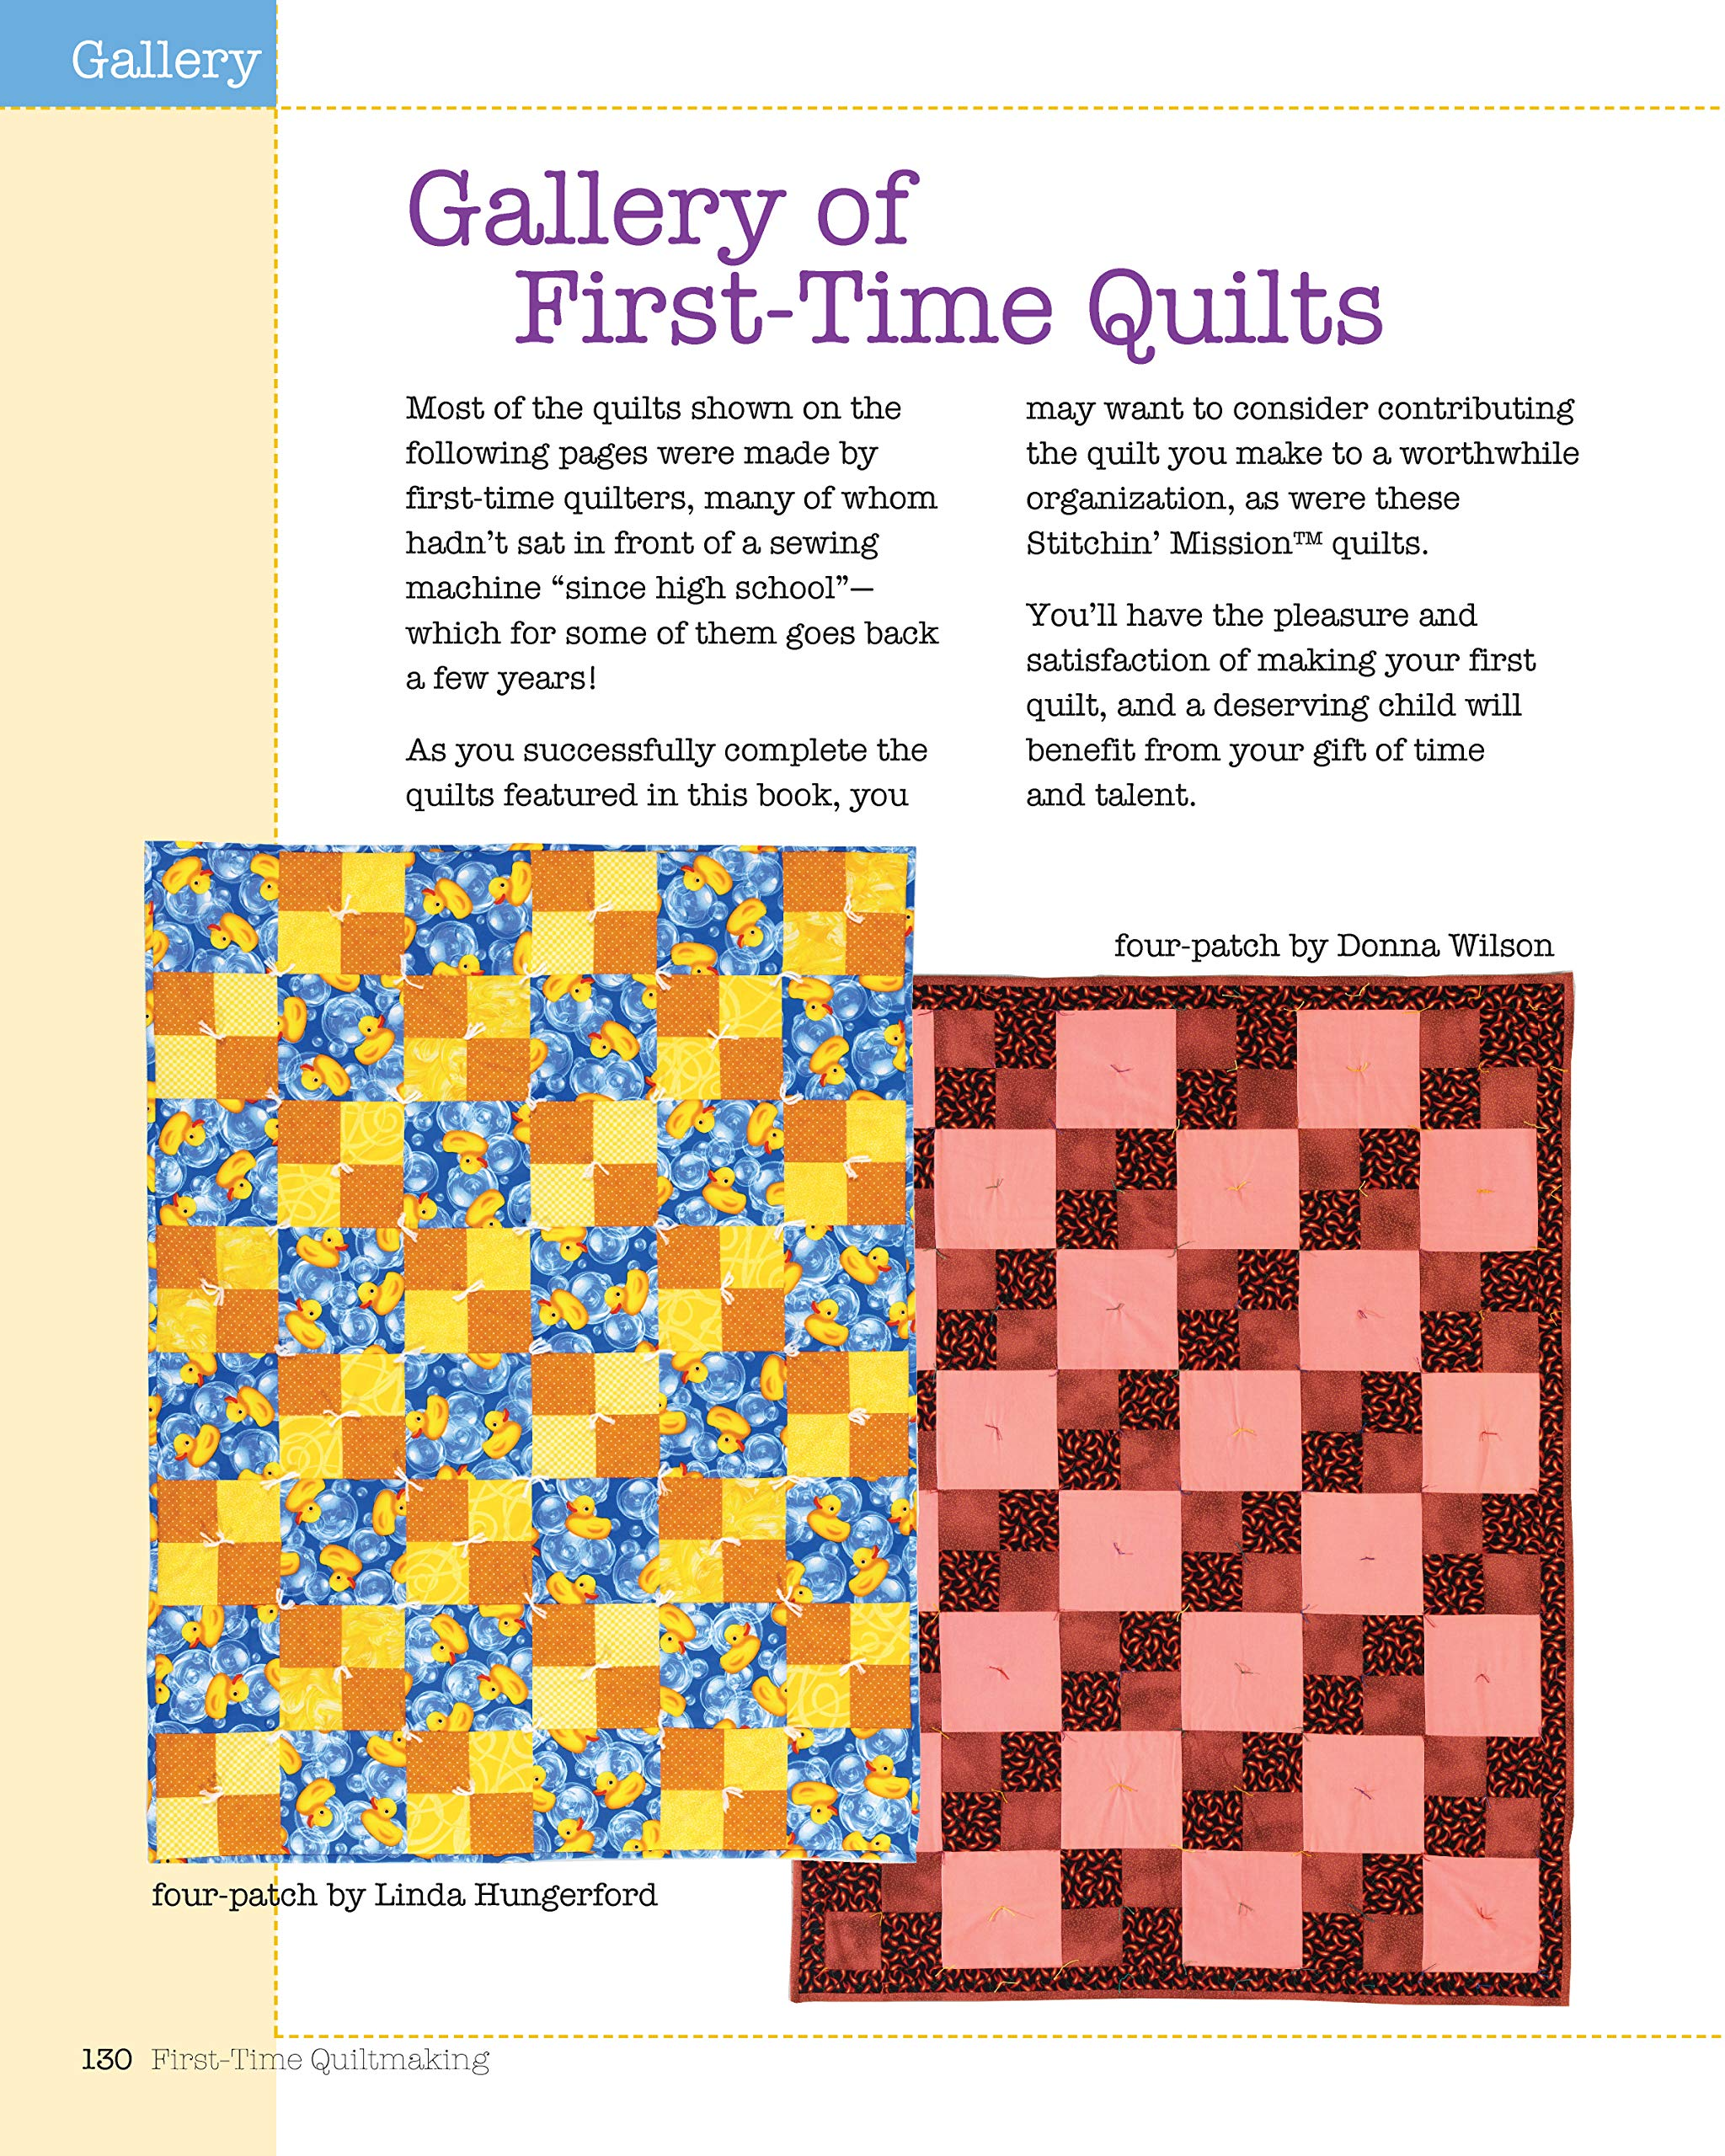 PINK Moda Fabric Top /& Back Label Binding /&More LEARN TO SEW MY FIRST QUILT KIT